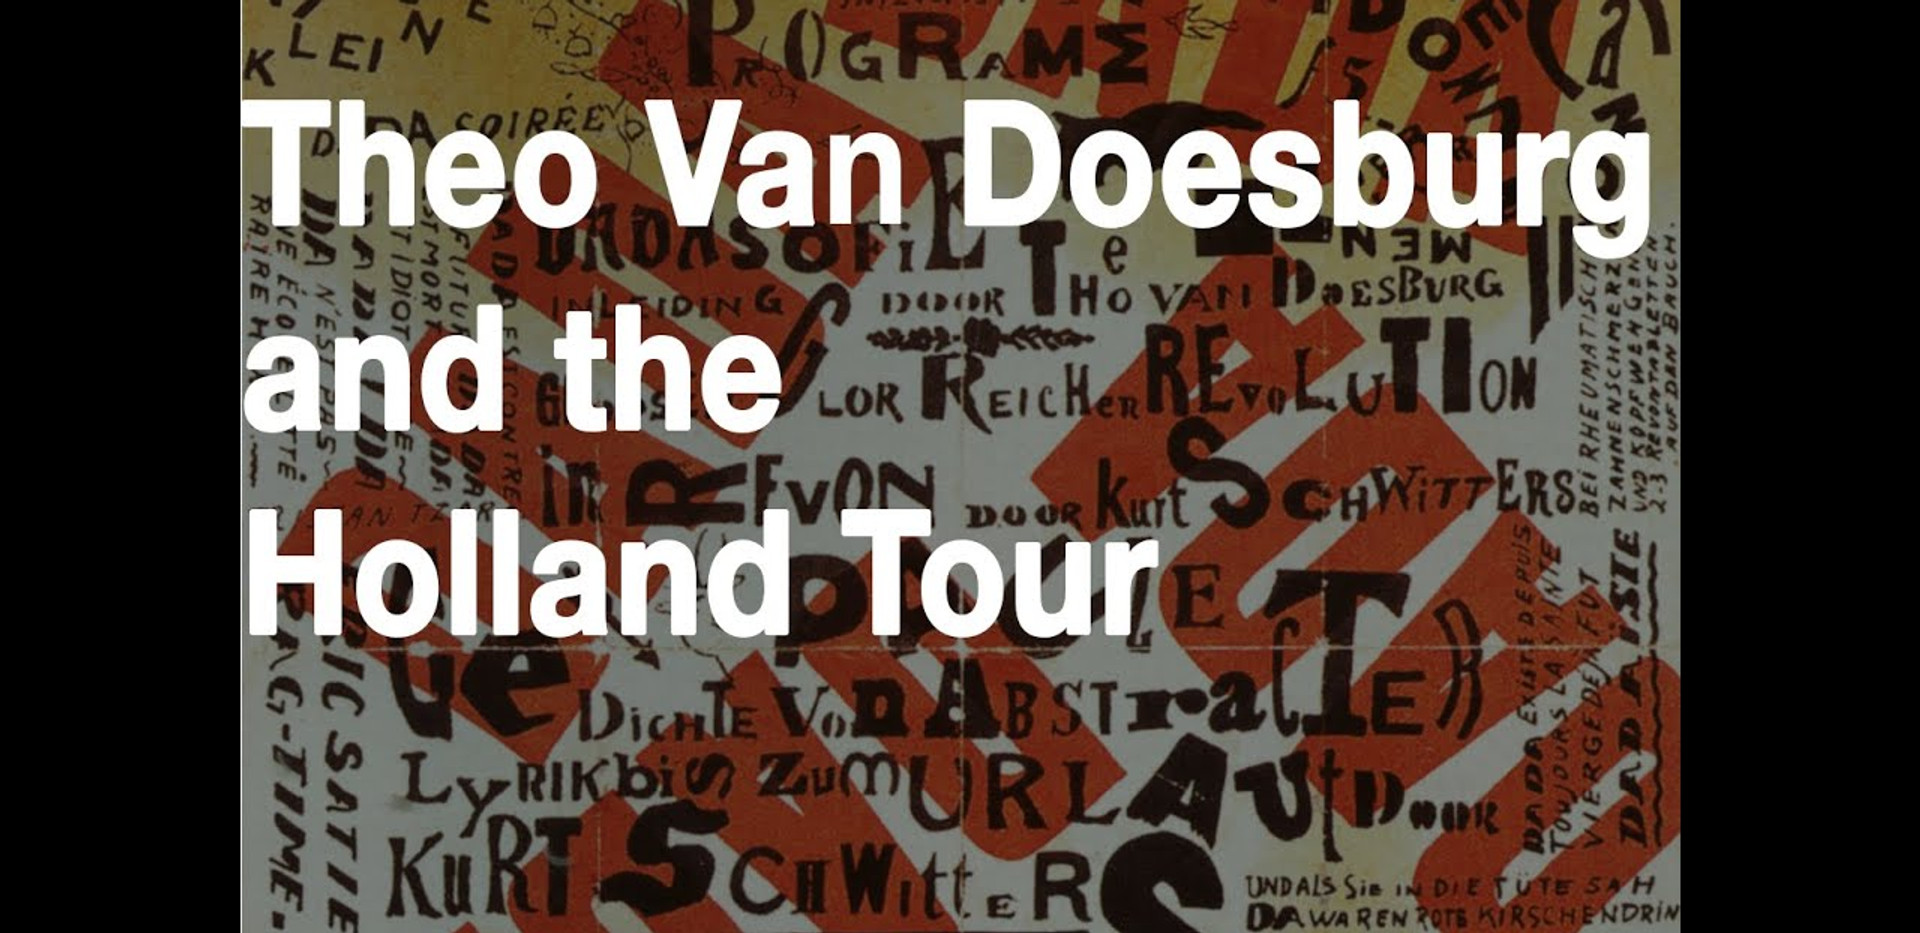 Theo Van Doesburg, Dada & the Holland Tour of 1923